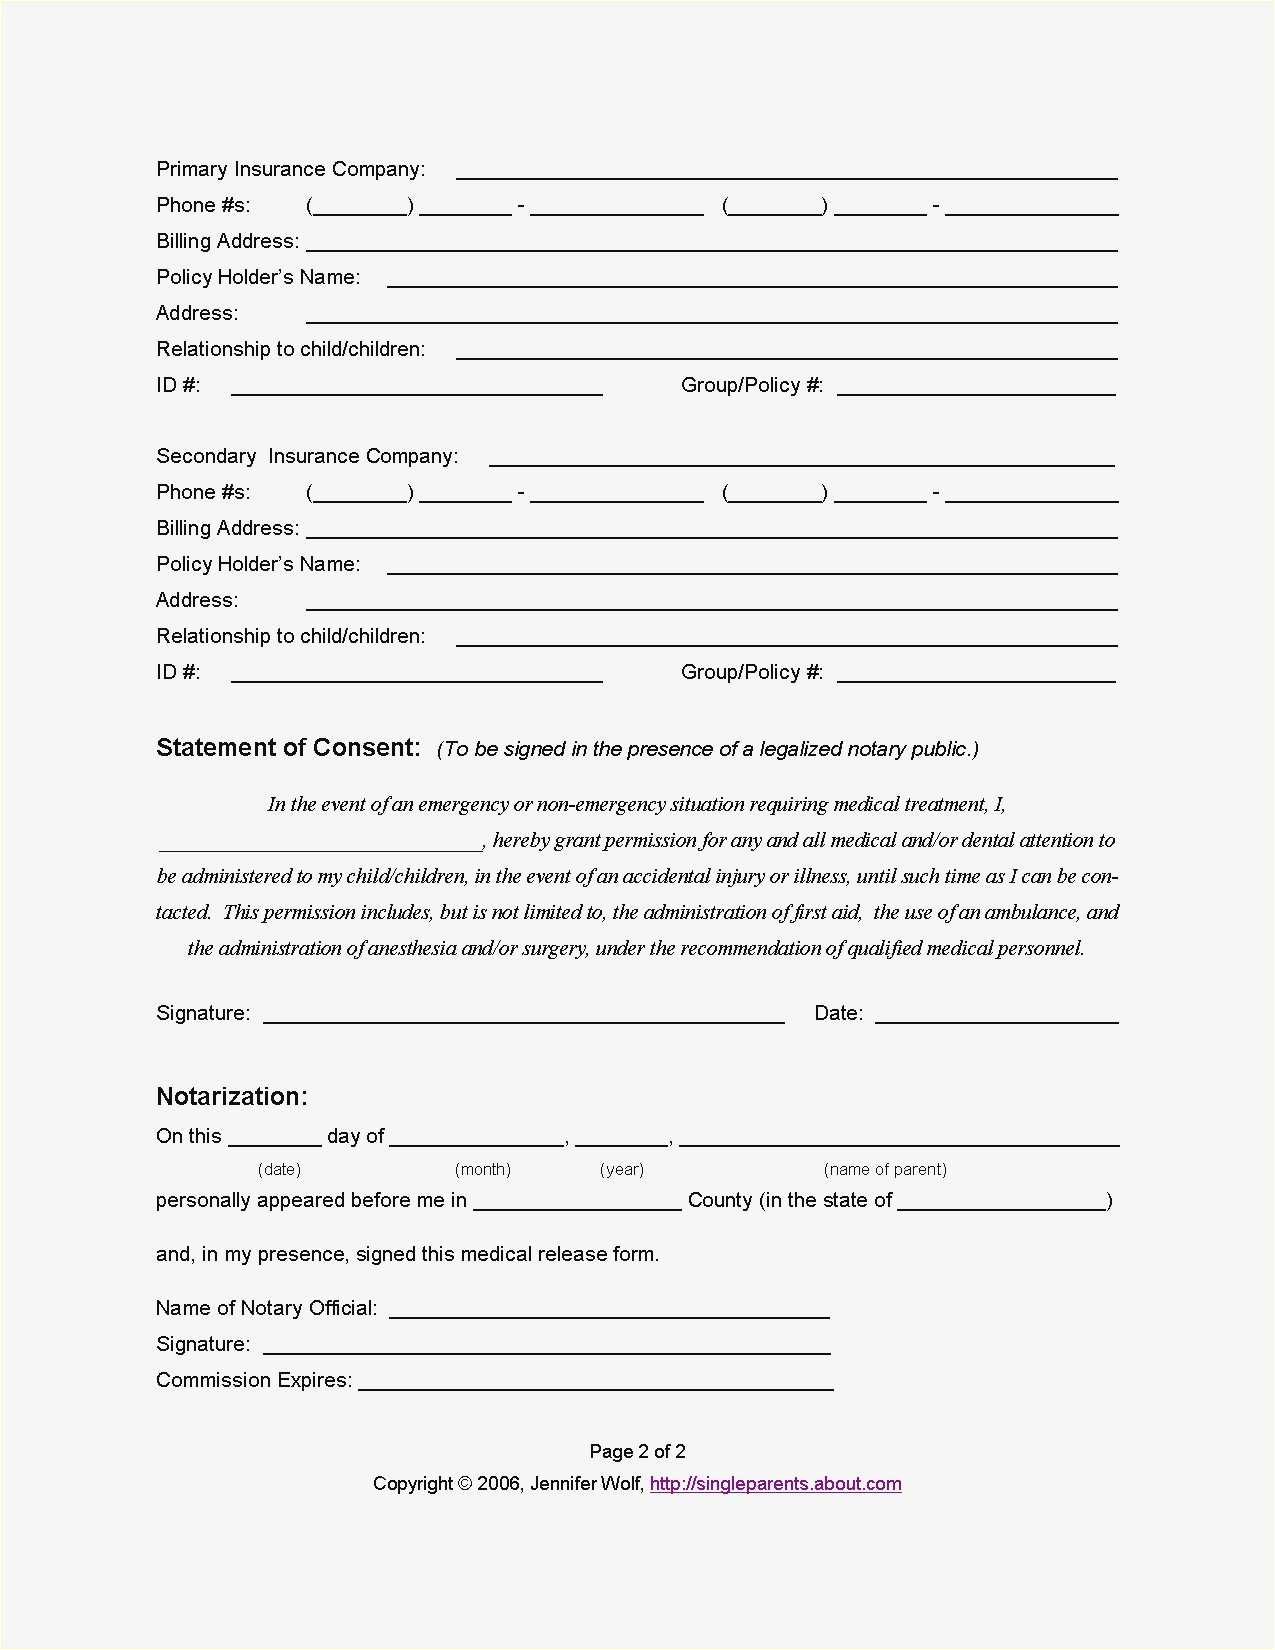 Temporary Guardianship Forms Download Free Printable Child Guardianship Forms Photo